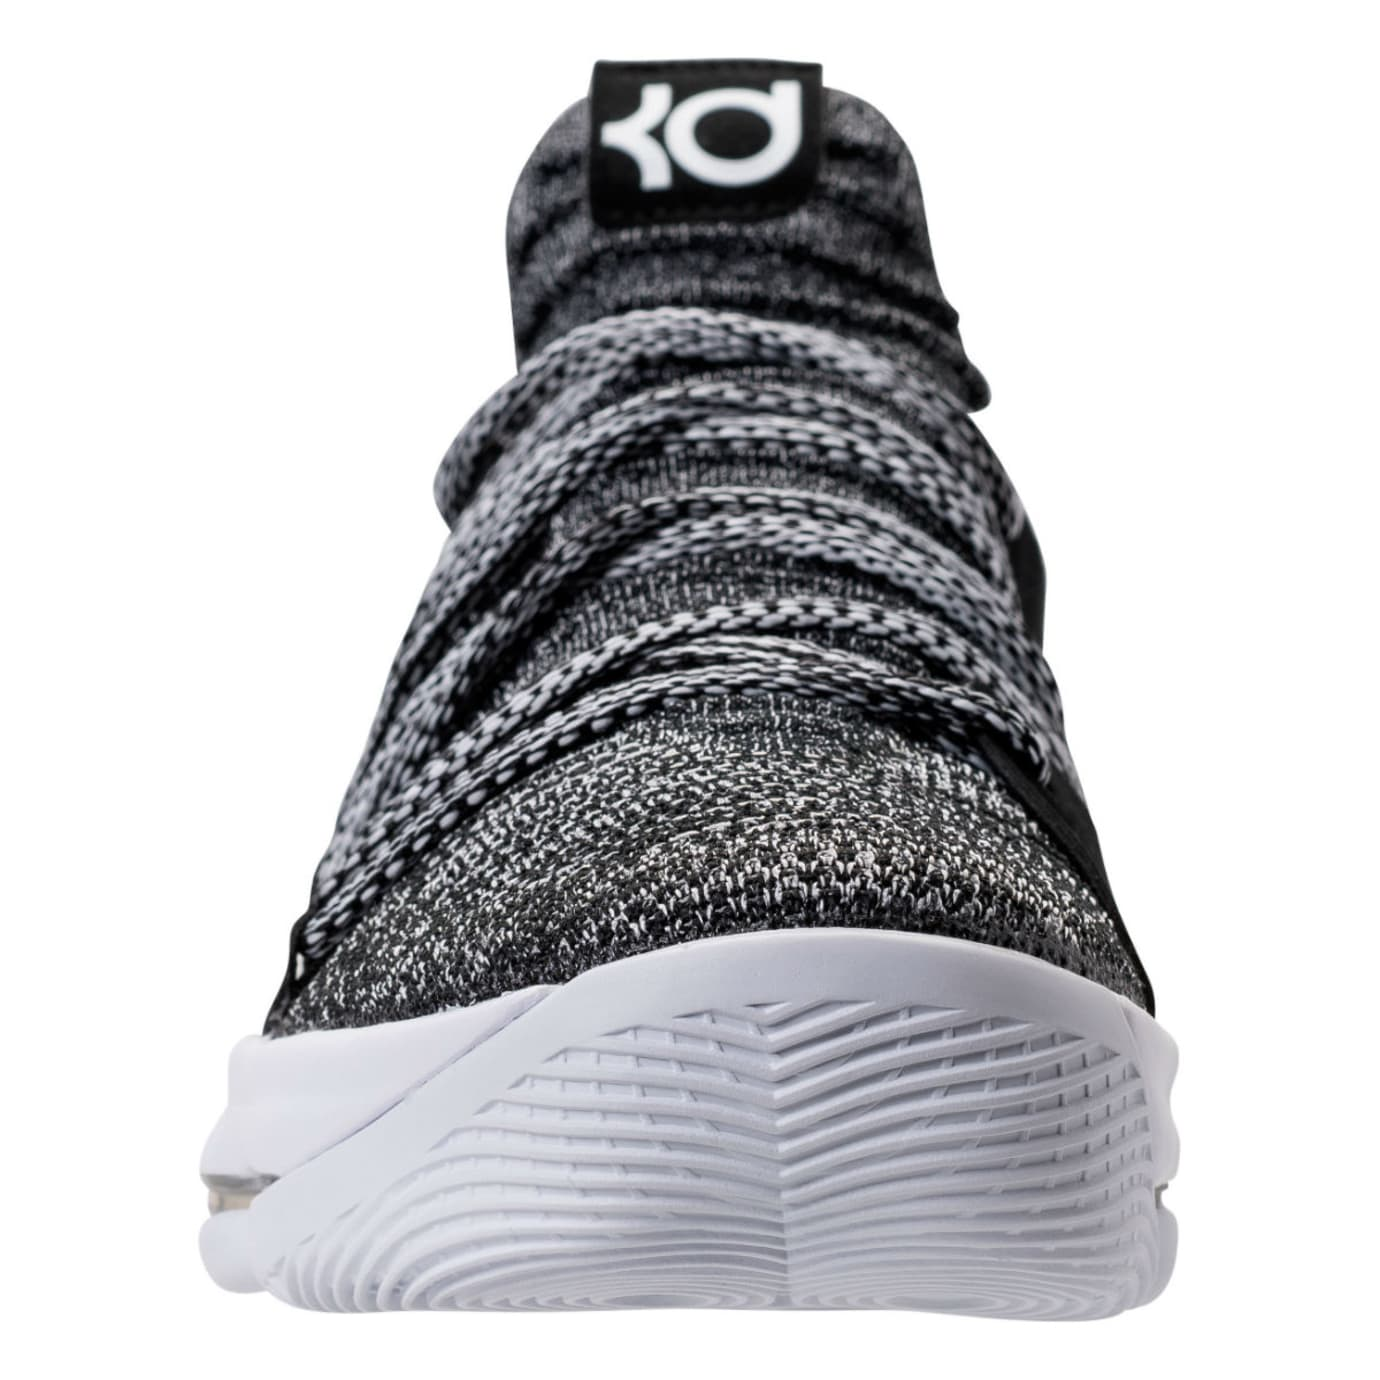 reputable site 6ce8e d91b8 Nike KD 10 Oreo Release Date 897815-001 | Sole Collector